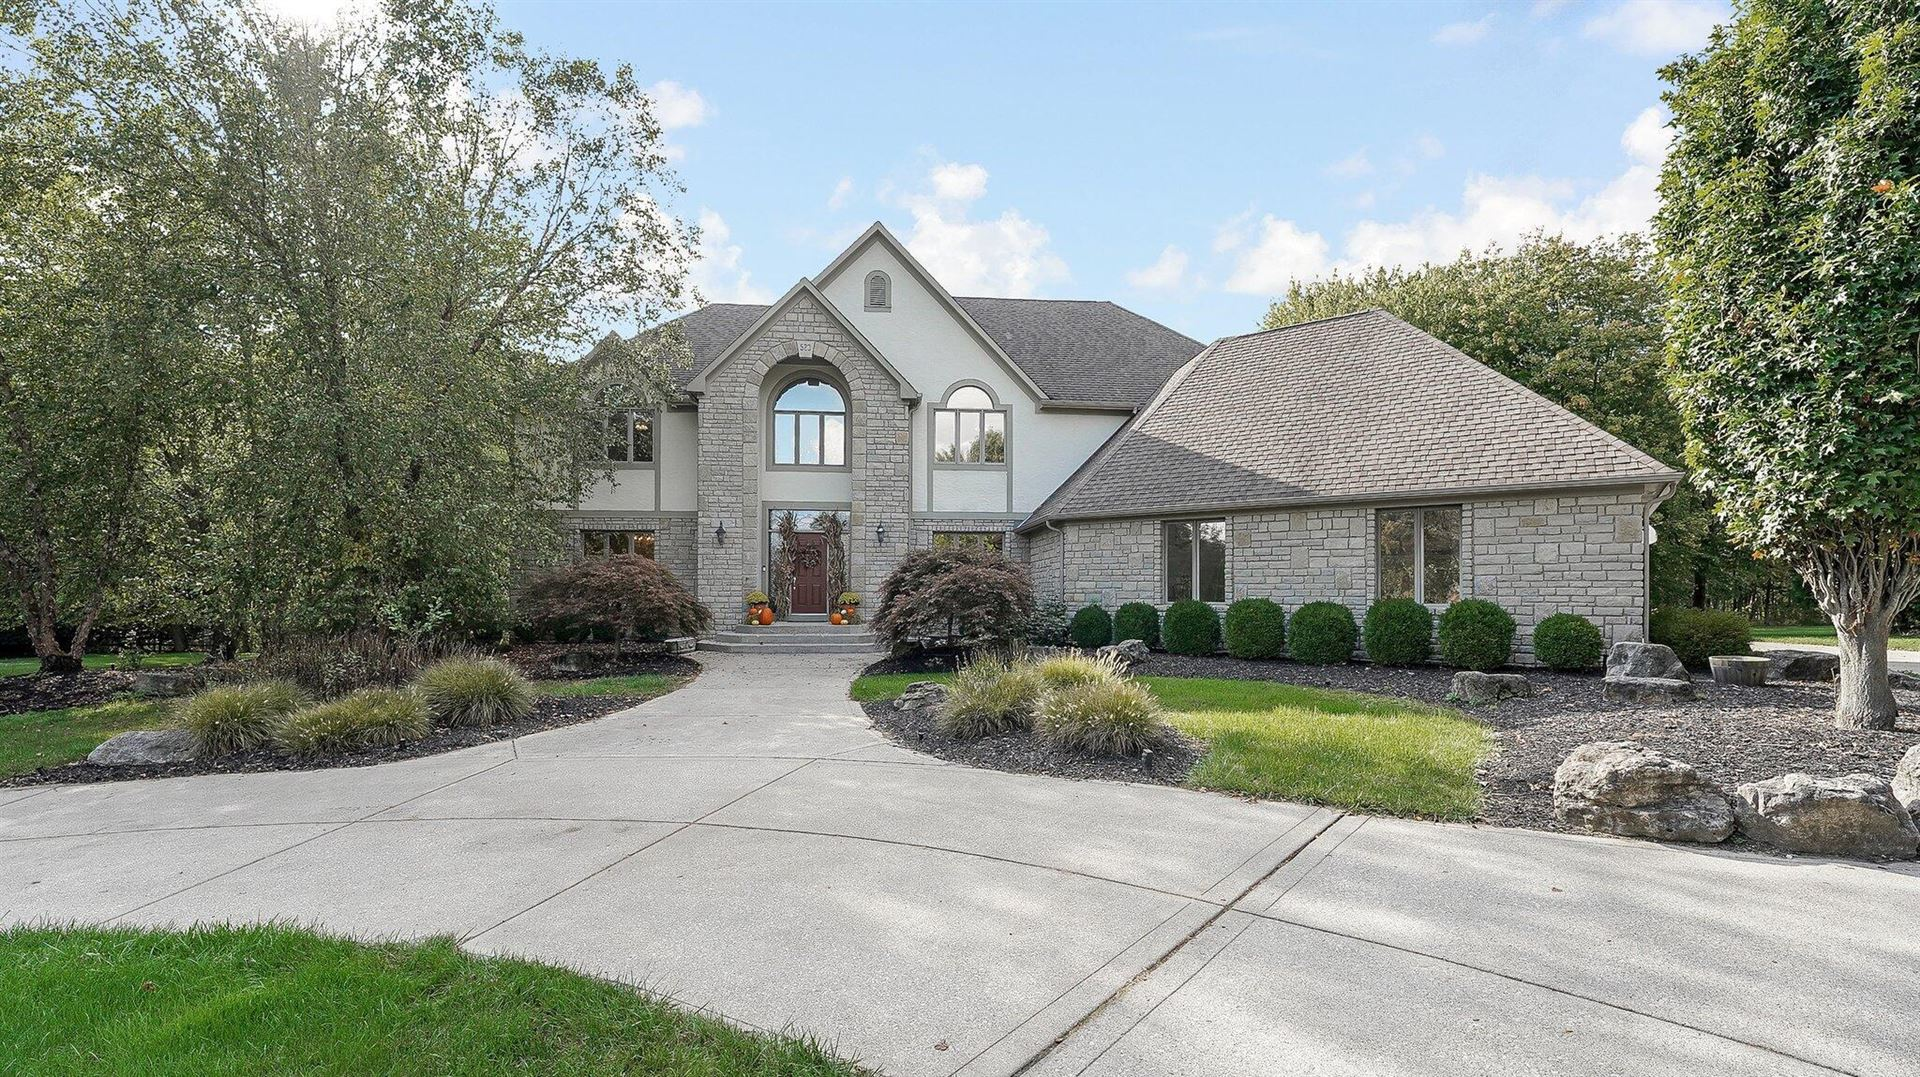 Photo of 523 Cardinal Hill Lane, Powell, OH 43065 (MLS # 221040413)